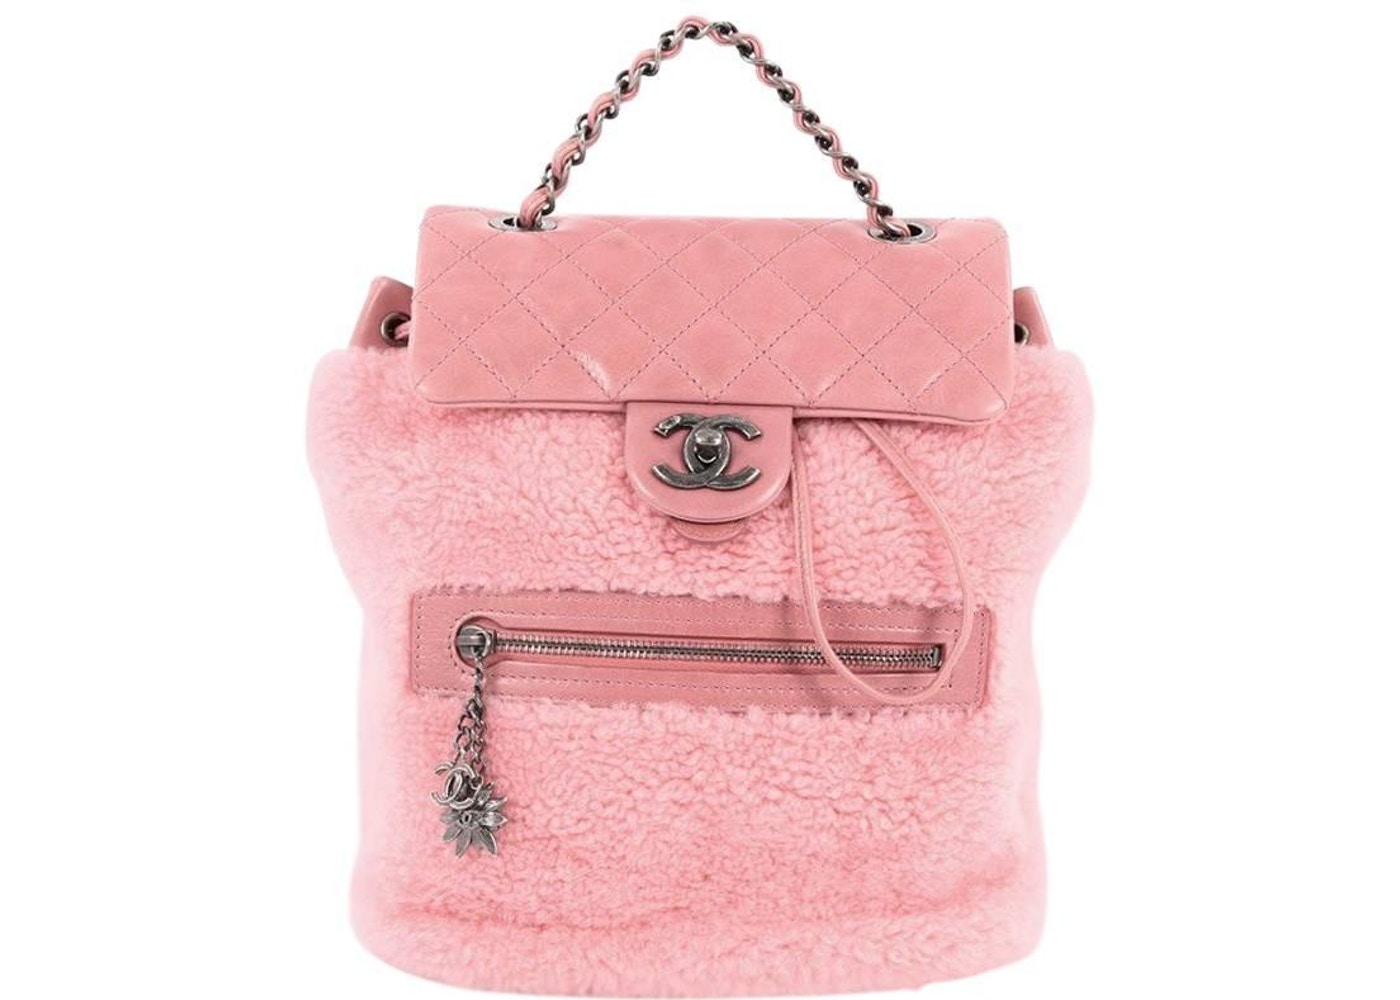 50ee07866a2f Chanel Mountain Backpack Diamond Calfskin Pink. Diamond Calfskin Pink